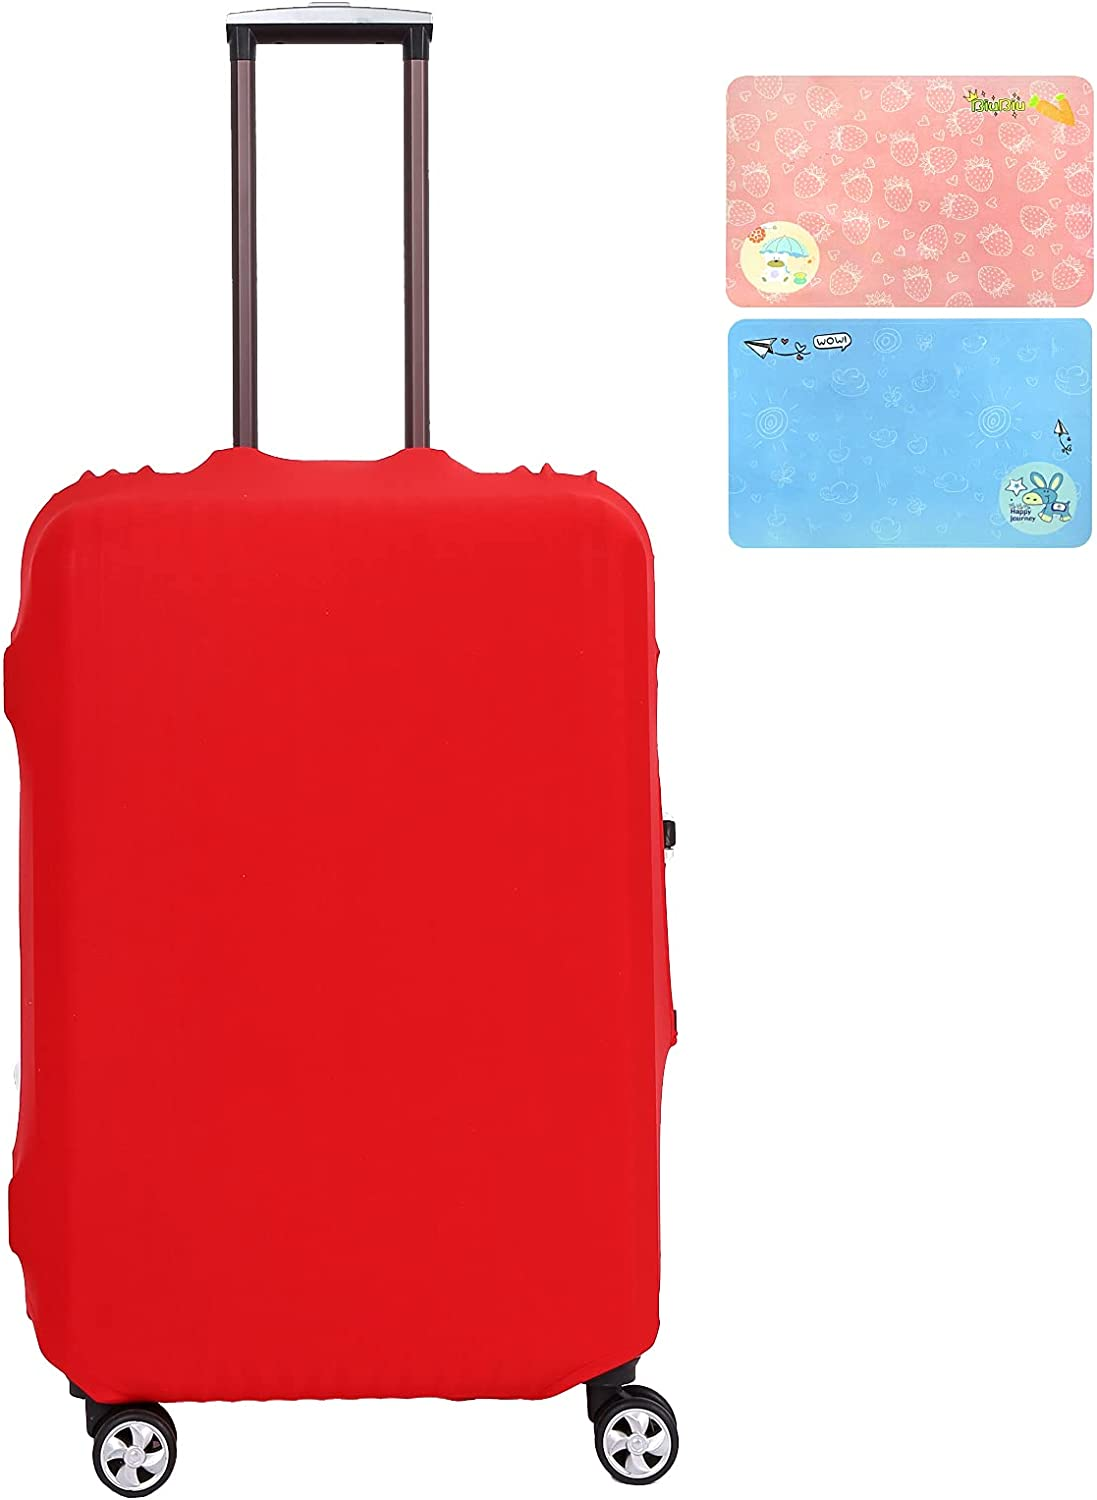 Luggage Cover Withstand Washington Mall Dallas Mall Dust Fits Protector Washable 26